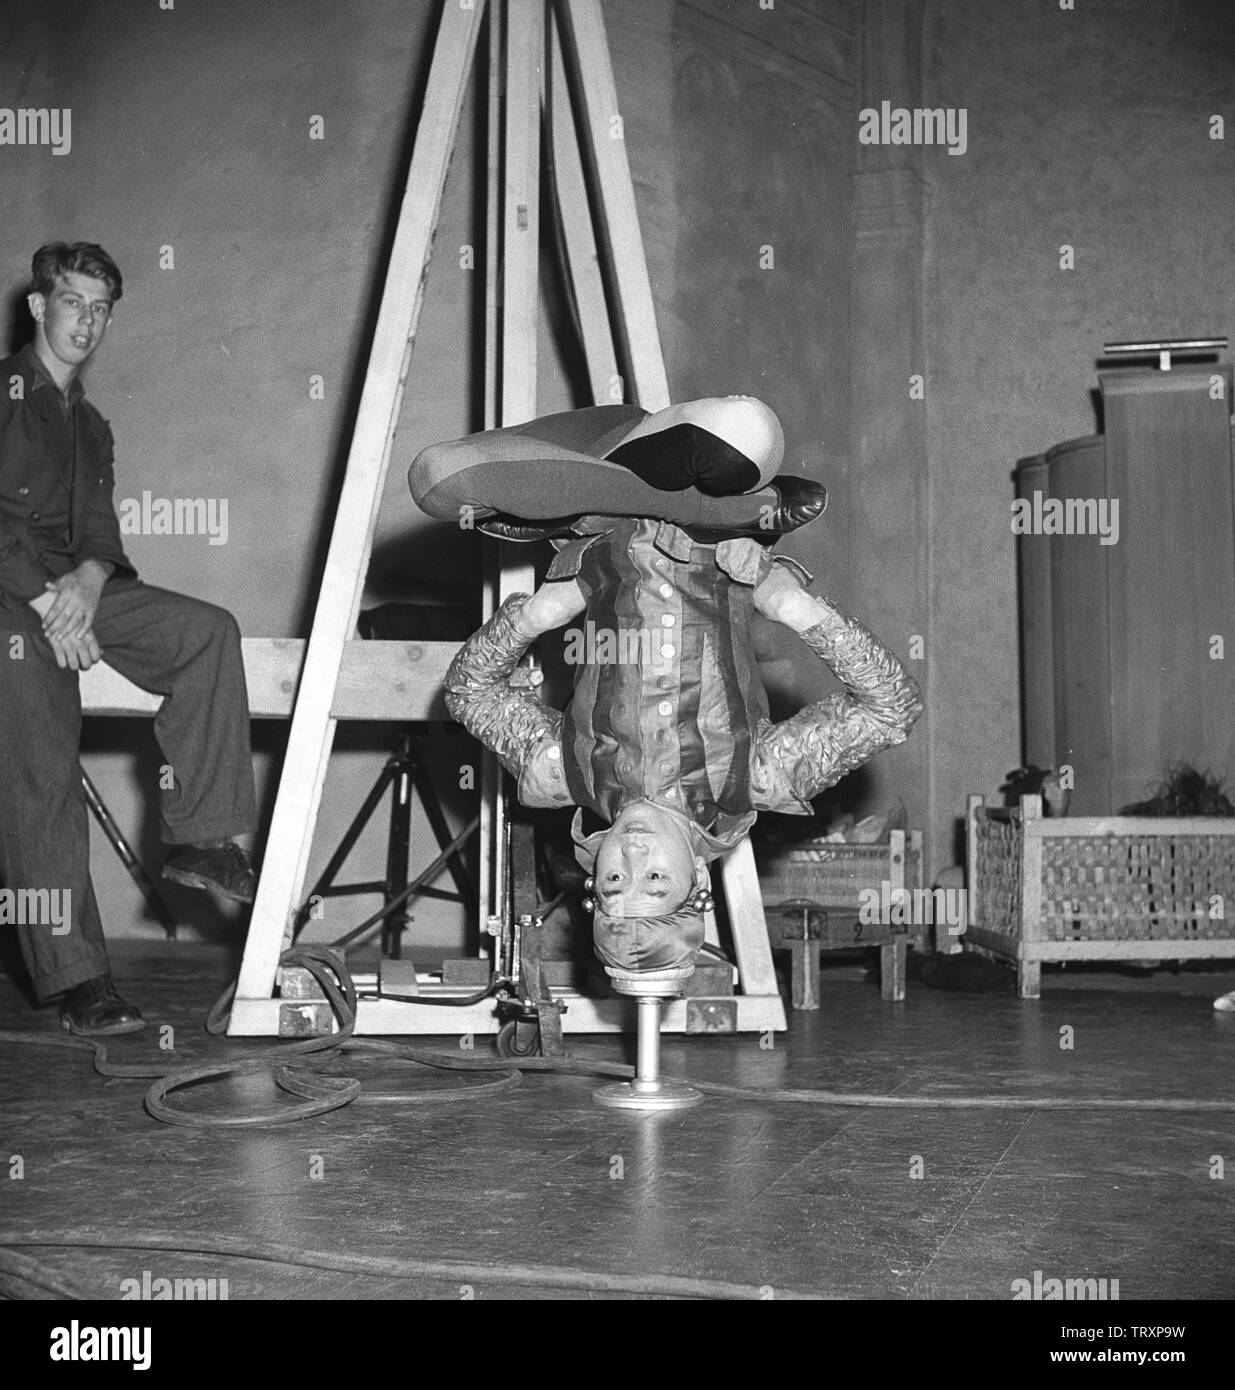 Balanced in the 1940s. A Young acrobatic man is standing on only his head and balancing his body in perfection with no help to stay that way by any means. Sweden 1946 Kristoffersson ref U66-3 - Stock Image